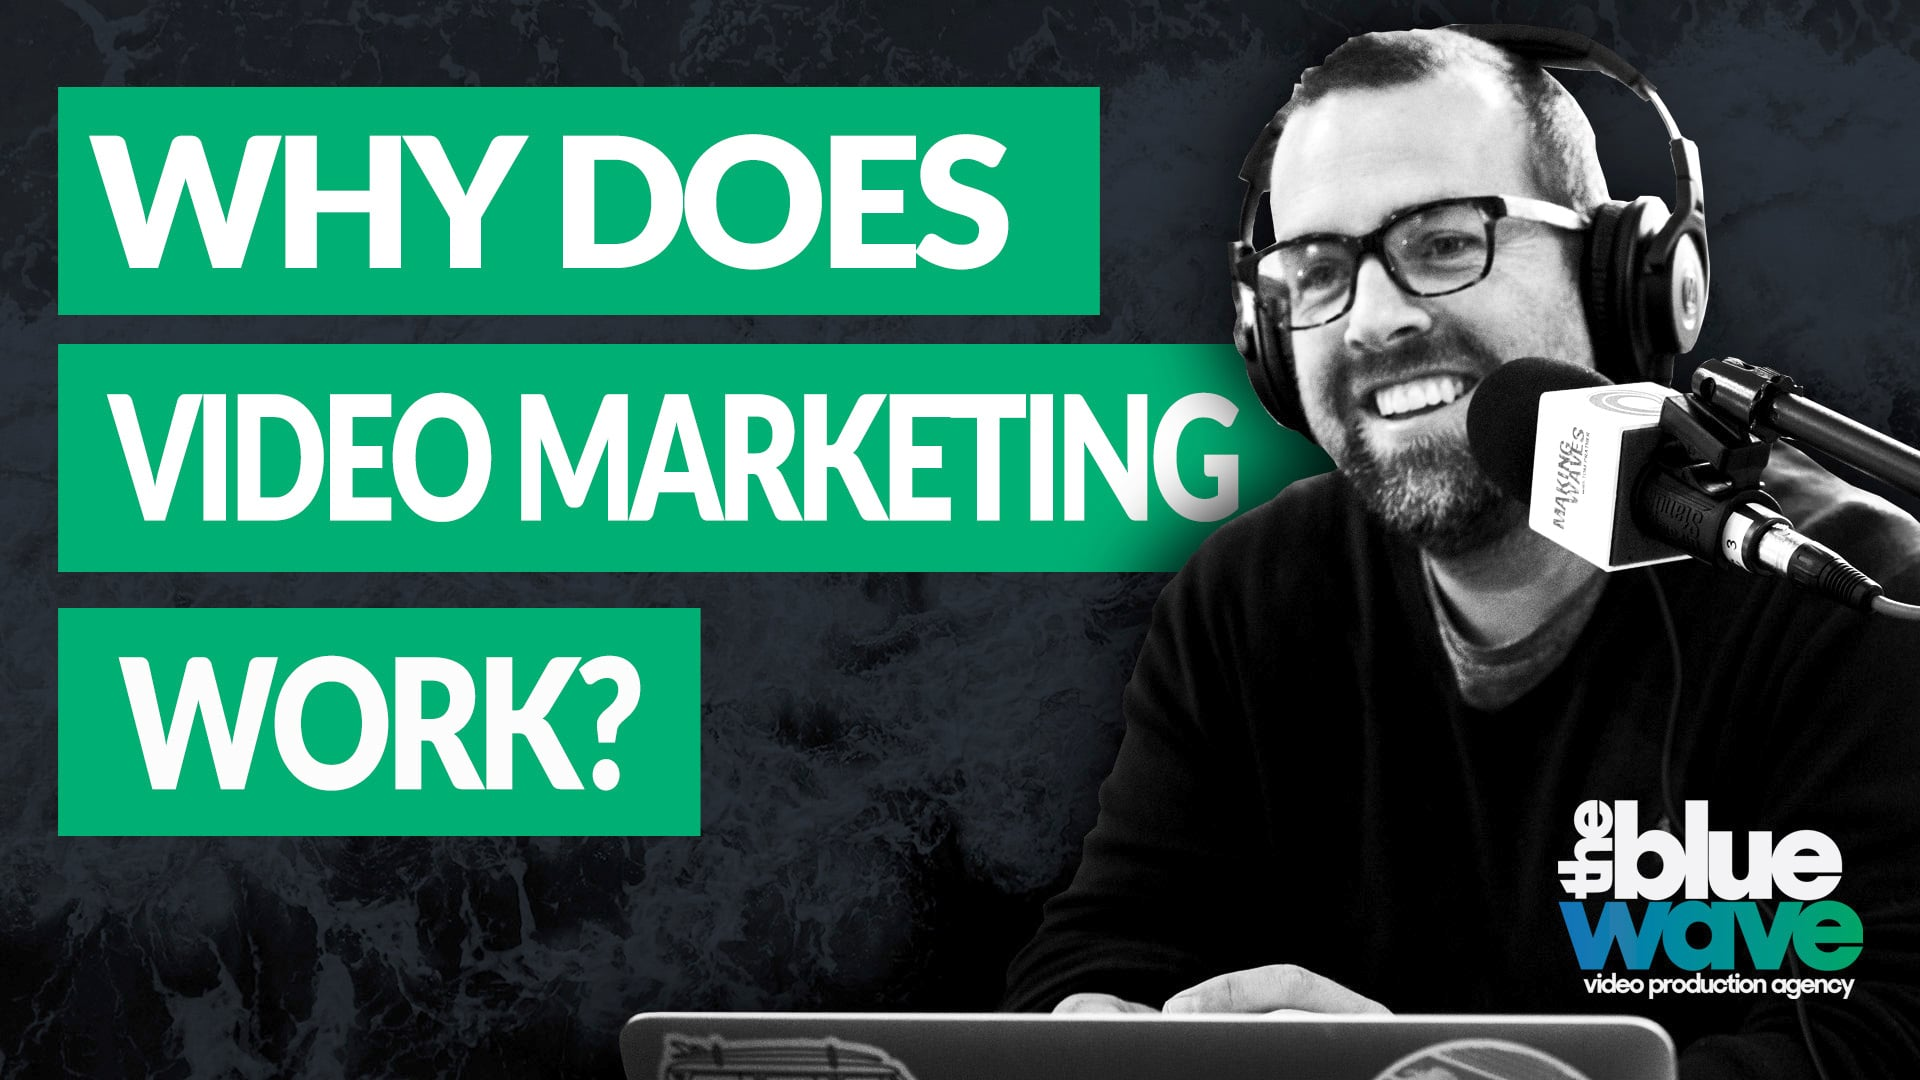 Why does video marketing work? | Video Marketing 2021